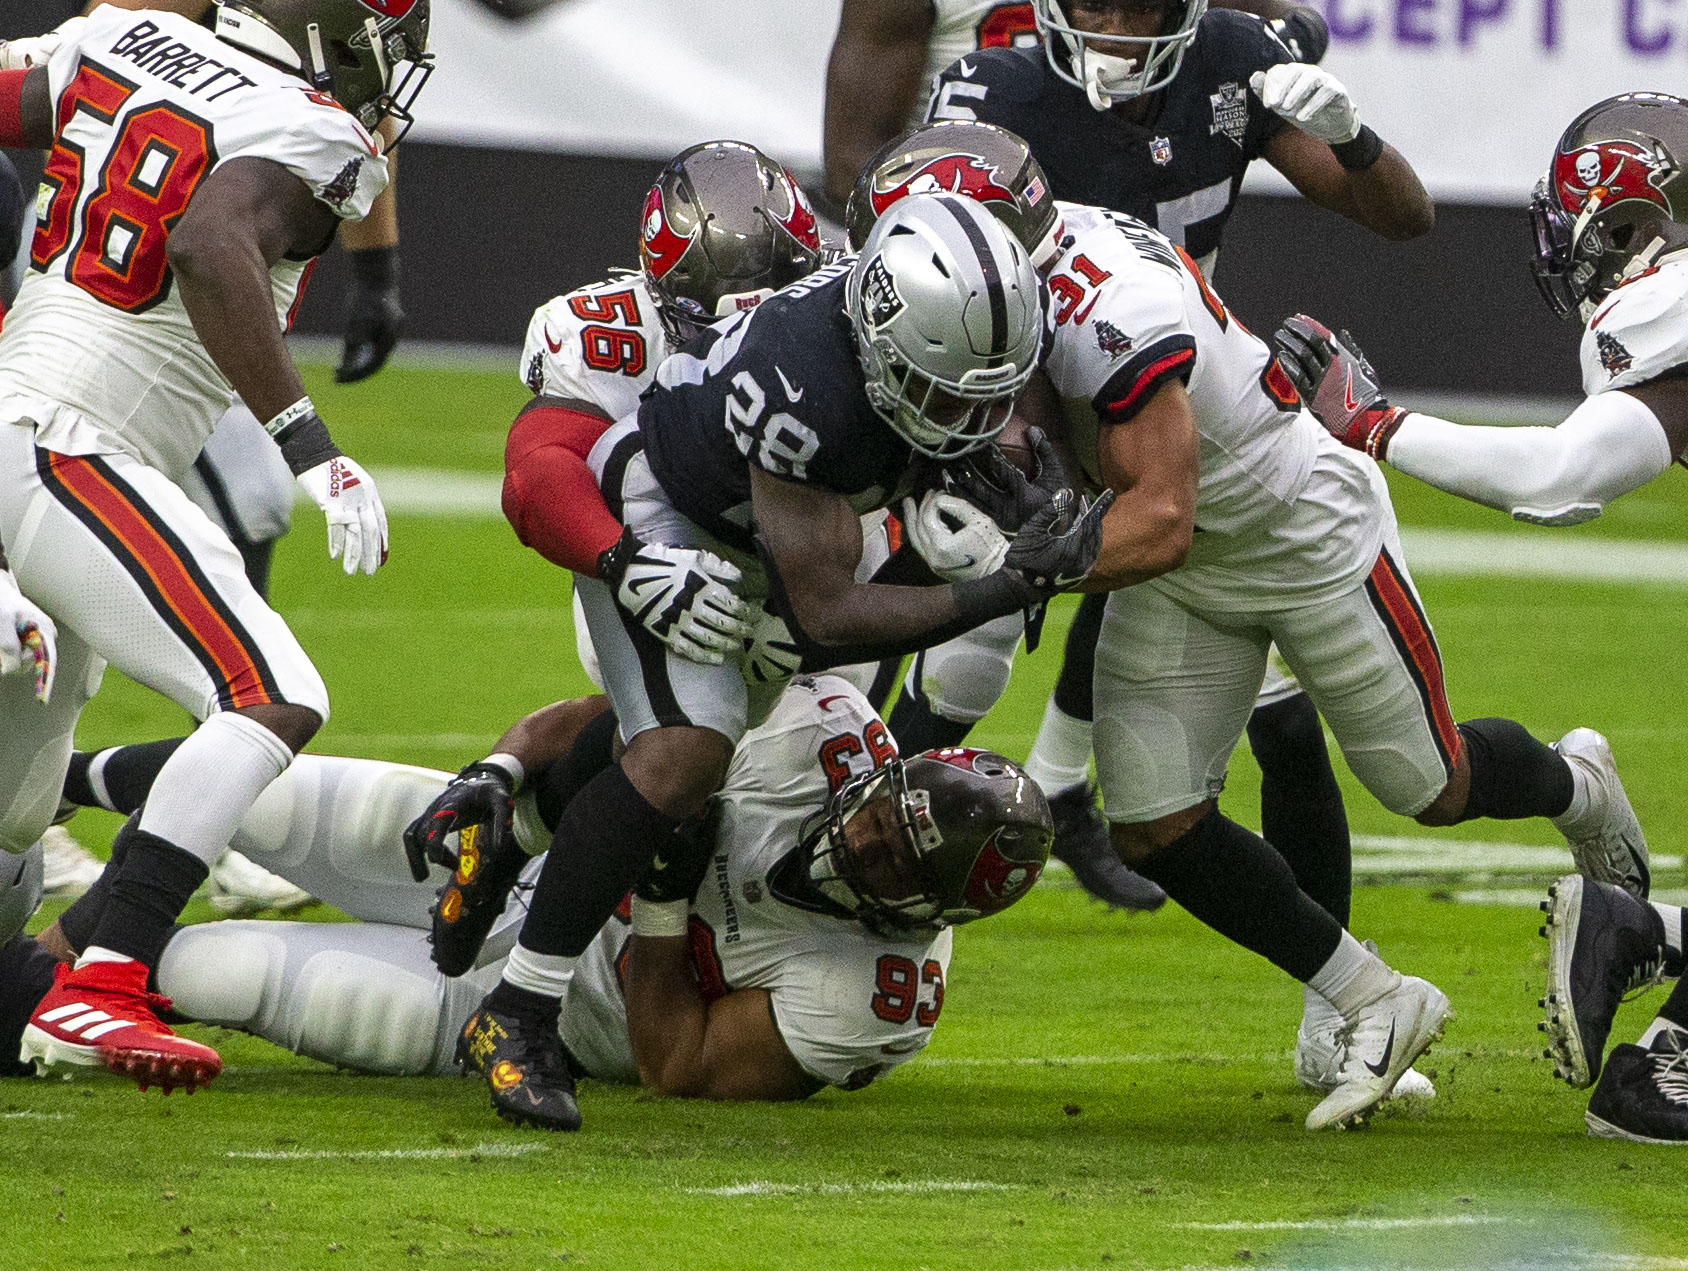 Las Vegas Raiders running back Josh Jacobs (28) is brought down by defensive end Ndamukong Suh ...